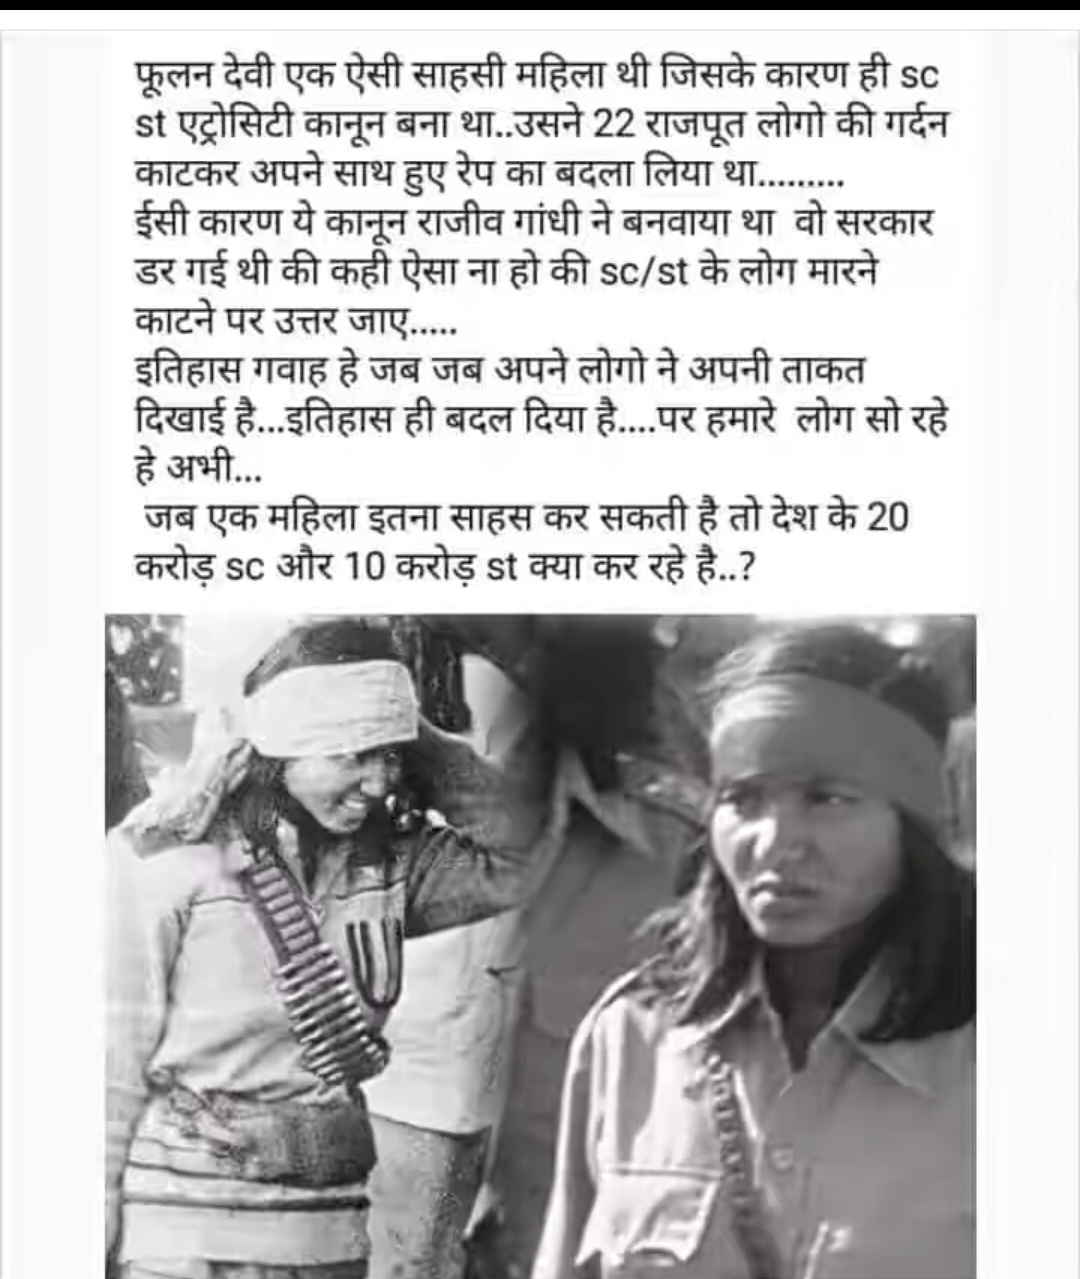 'If a woman [Phoolan Devi] could show so much courage, then what are the country's 20 crore Scheduled Caste and 10 crore Scheduled Tribe citizens doing?'